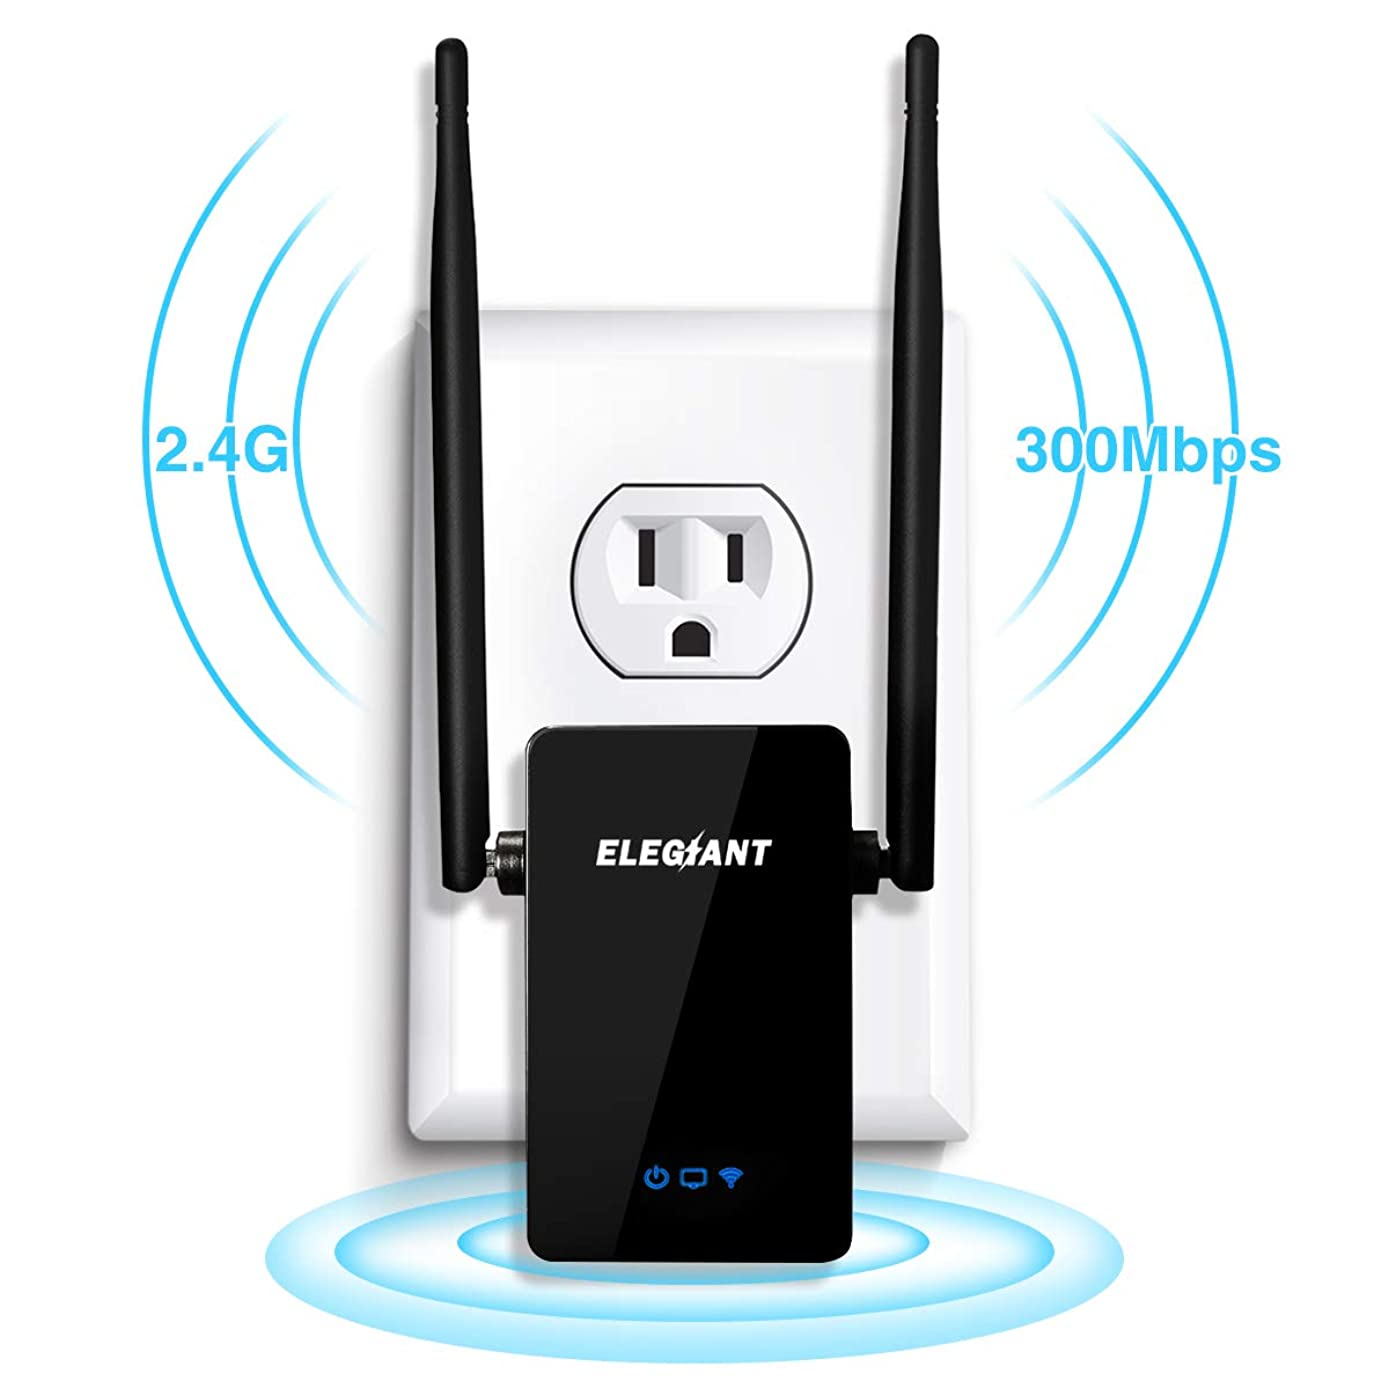 Wireless WiFi Repeater, ELEGIANT 300Mbps WiFi Range Extender Signal Amplifier Booster Supports Router Mode/Repeater/Access Point, with High Gain Dual External Antennas and 360 Degree WiFi Coverage